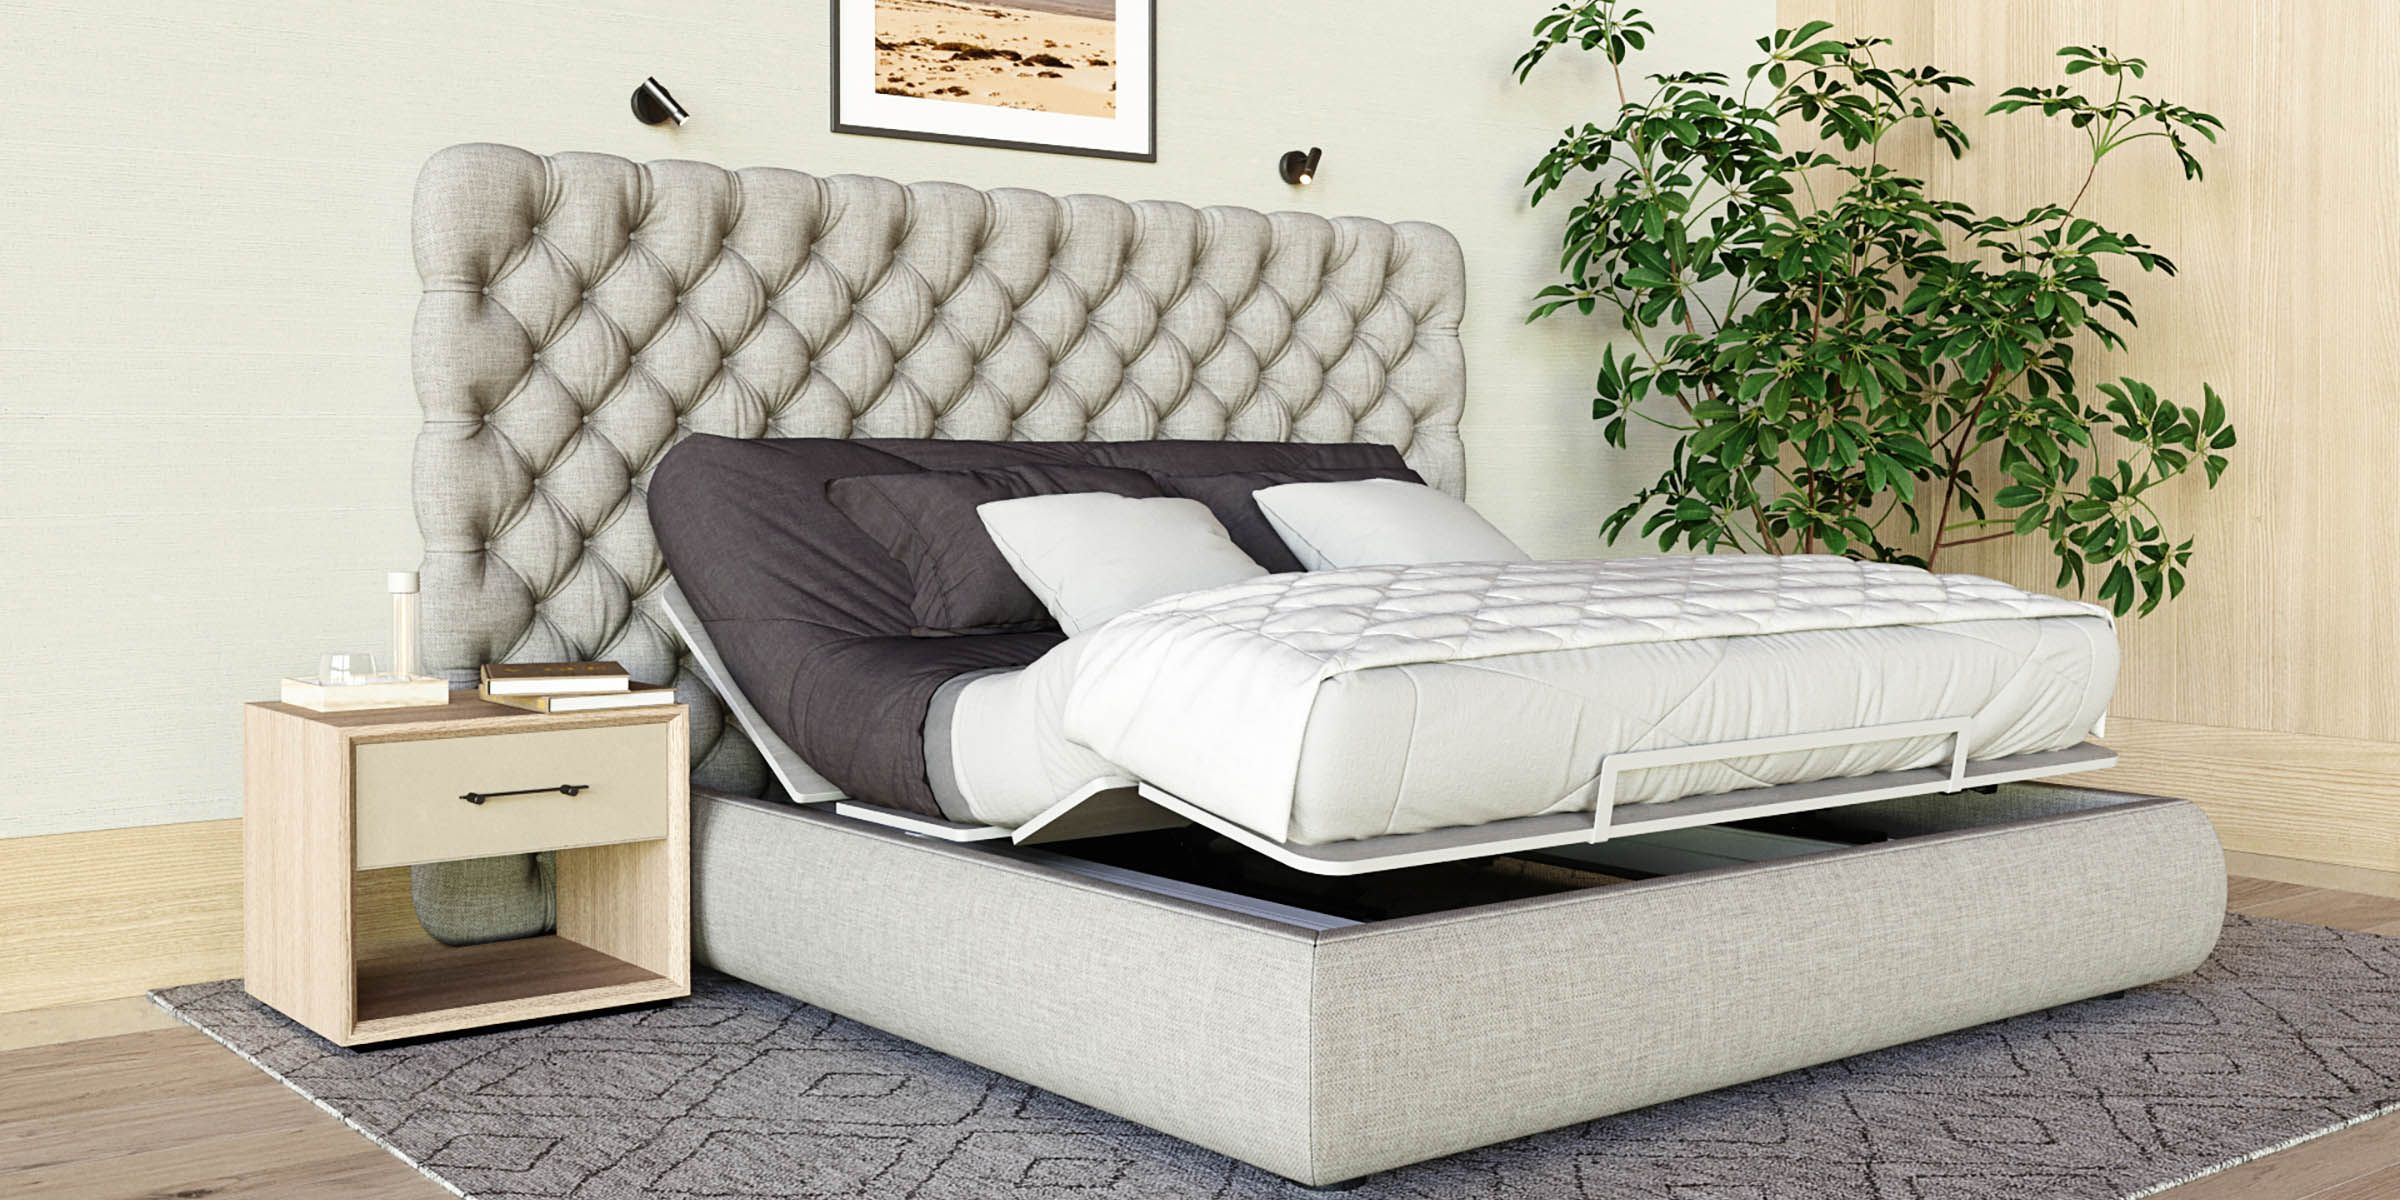 How To Choose A Headboard For Adjustable Bed Set It Up In 2020 Adjustable Bed Frame Adjustable Bed Headboard Adjustable Beds